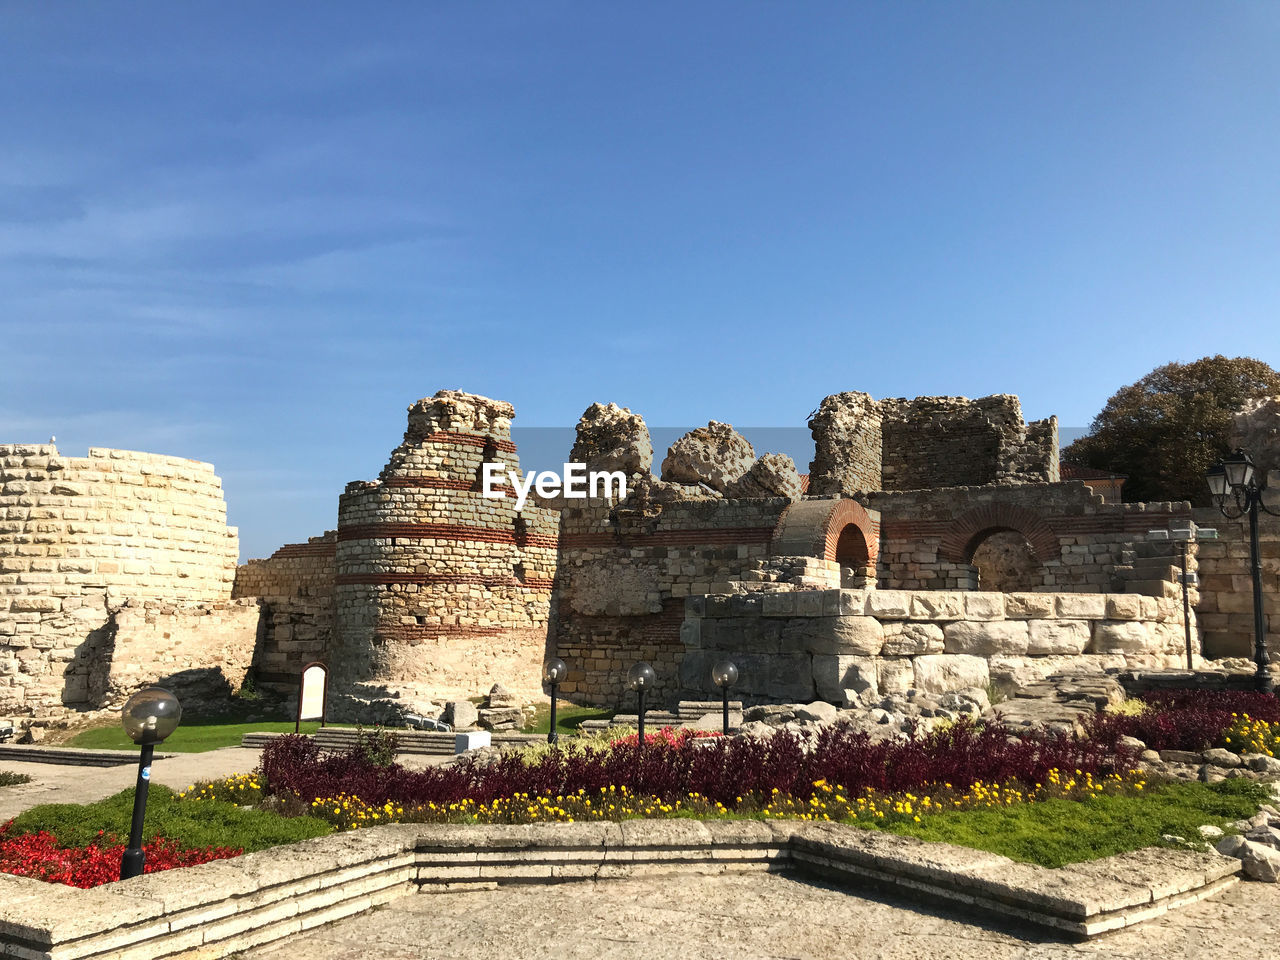 history, sky, the past, architecture, ancient, built structure, nature, day, old ruin, sunlight, travel destinations, no people, travel, old, ancient civilization, tourism, building exterior, building, plant, copy space, outdoors, archaeology, ruined